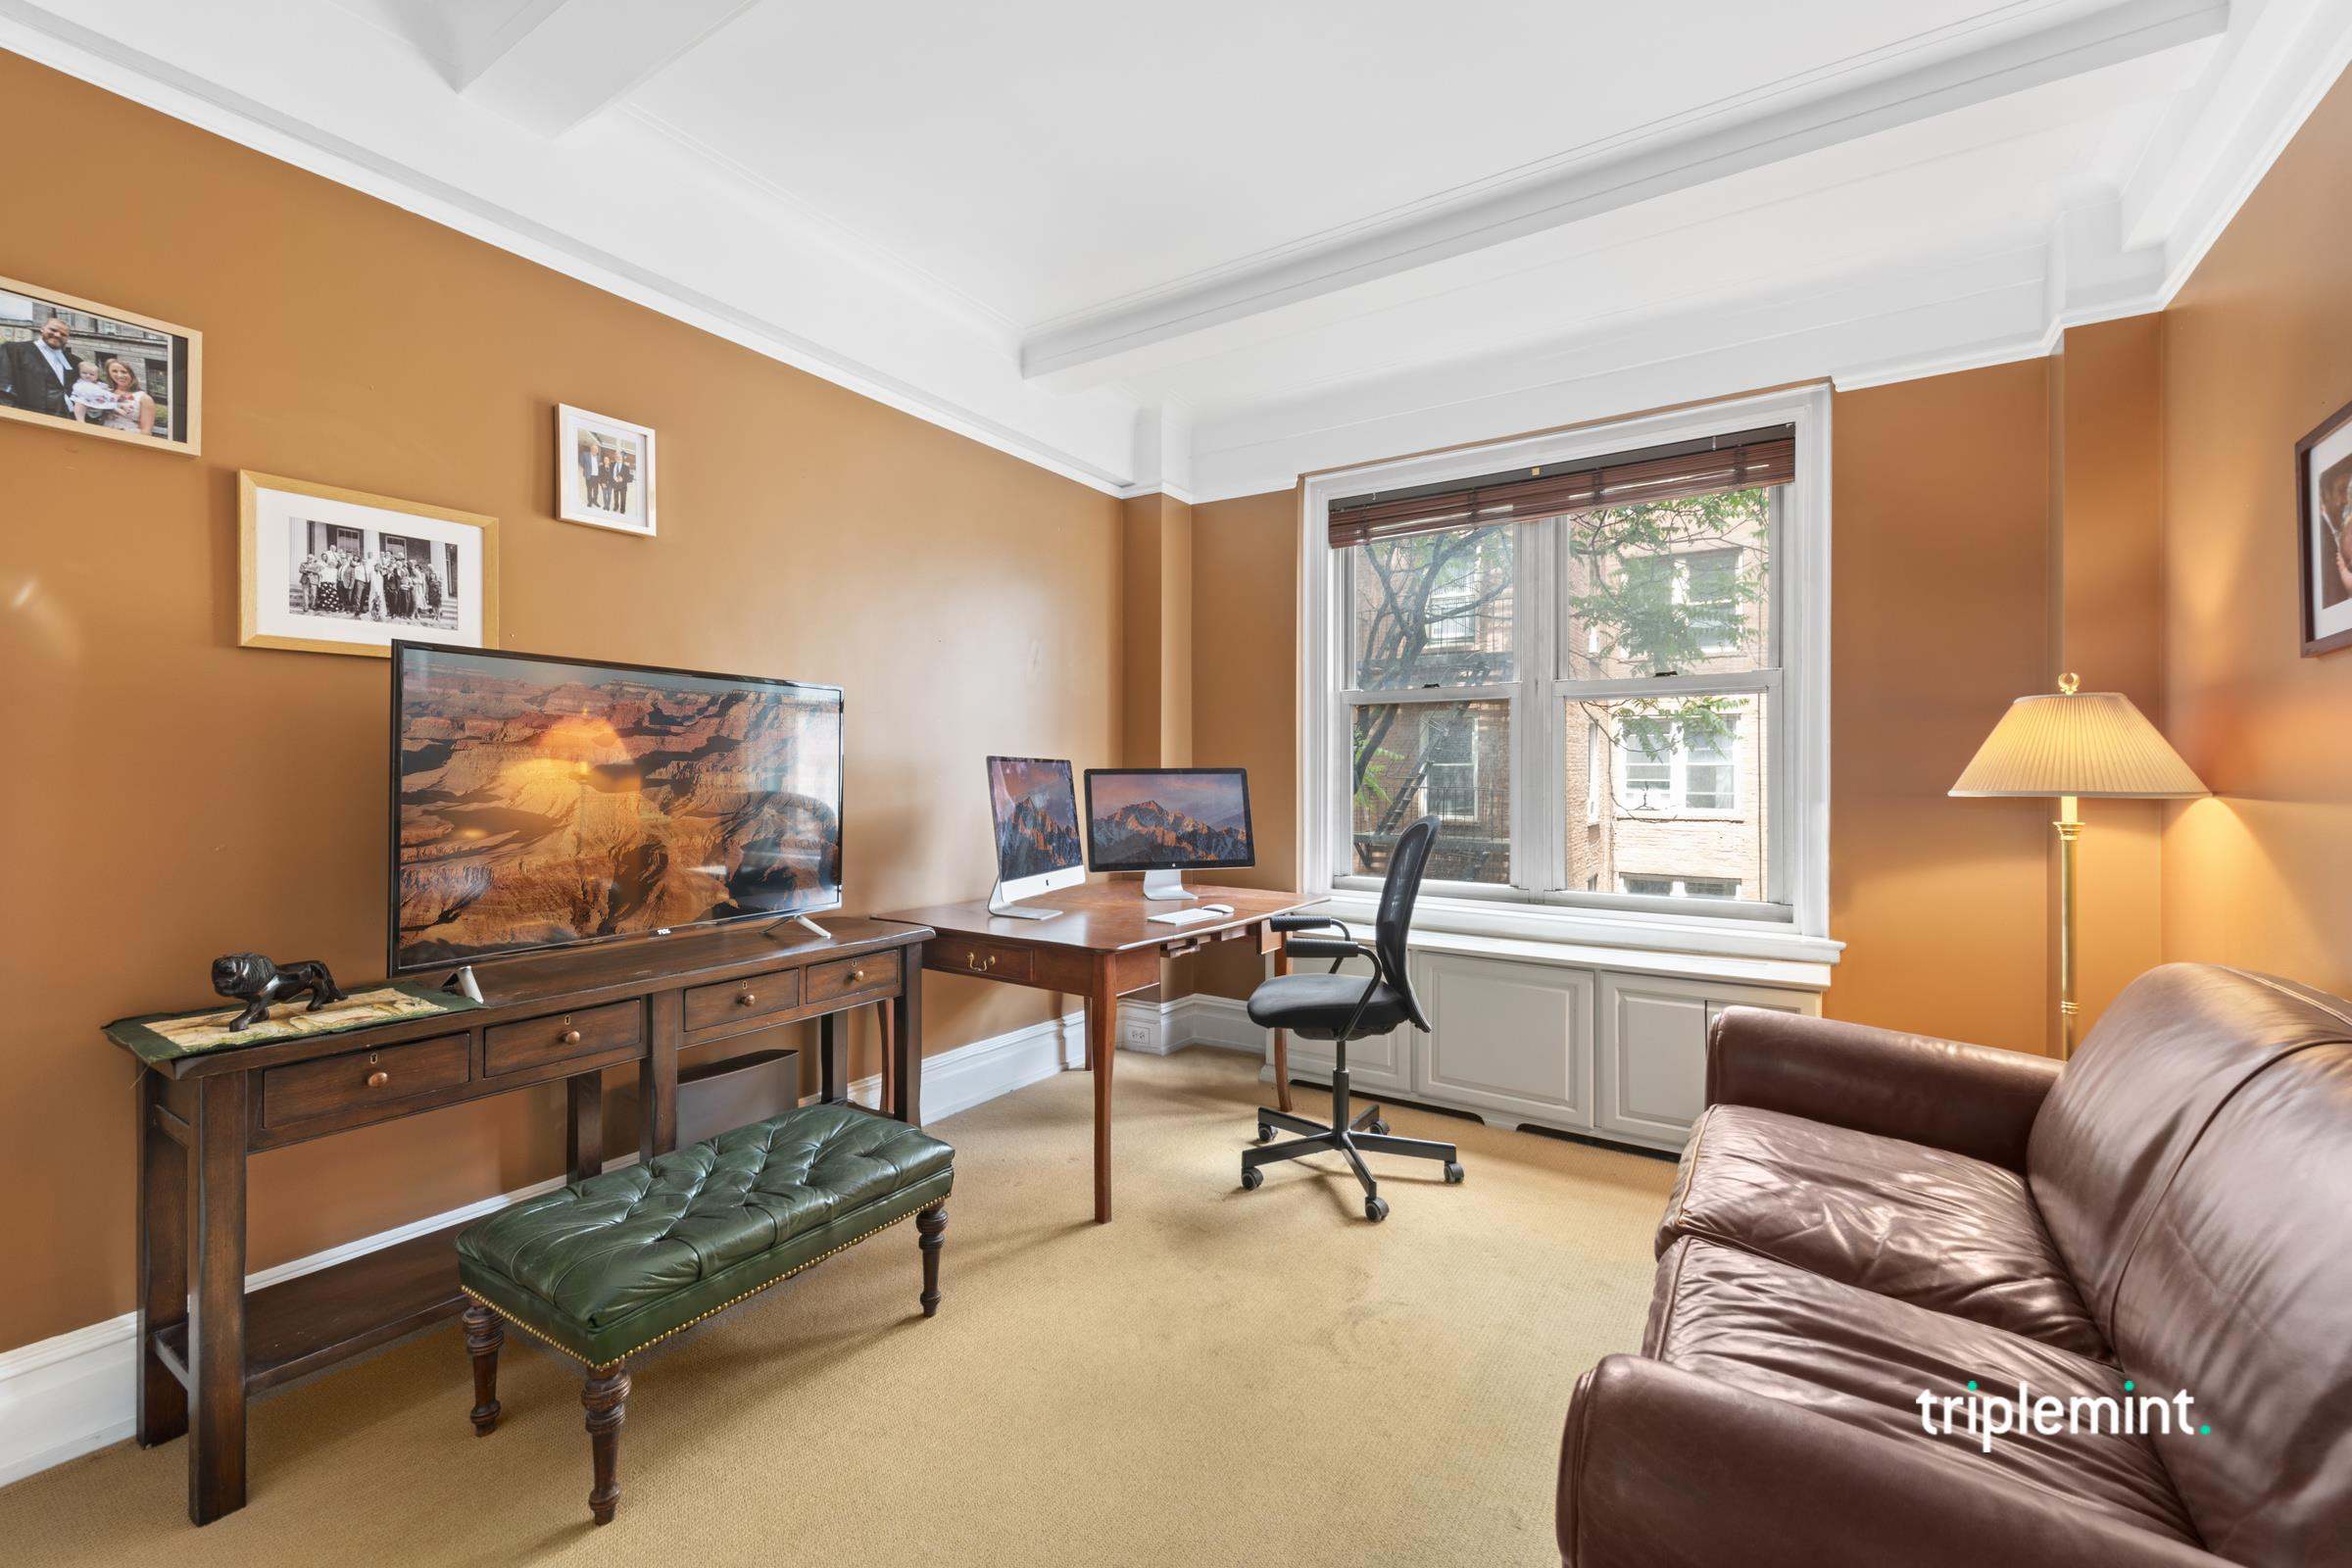 345 East 57th Street Sutton Place New York NY 10022